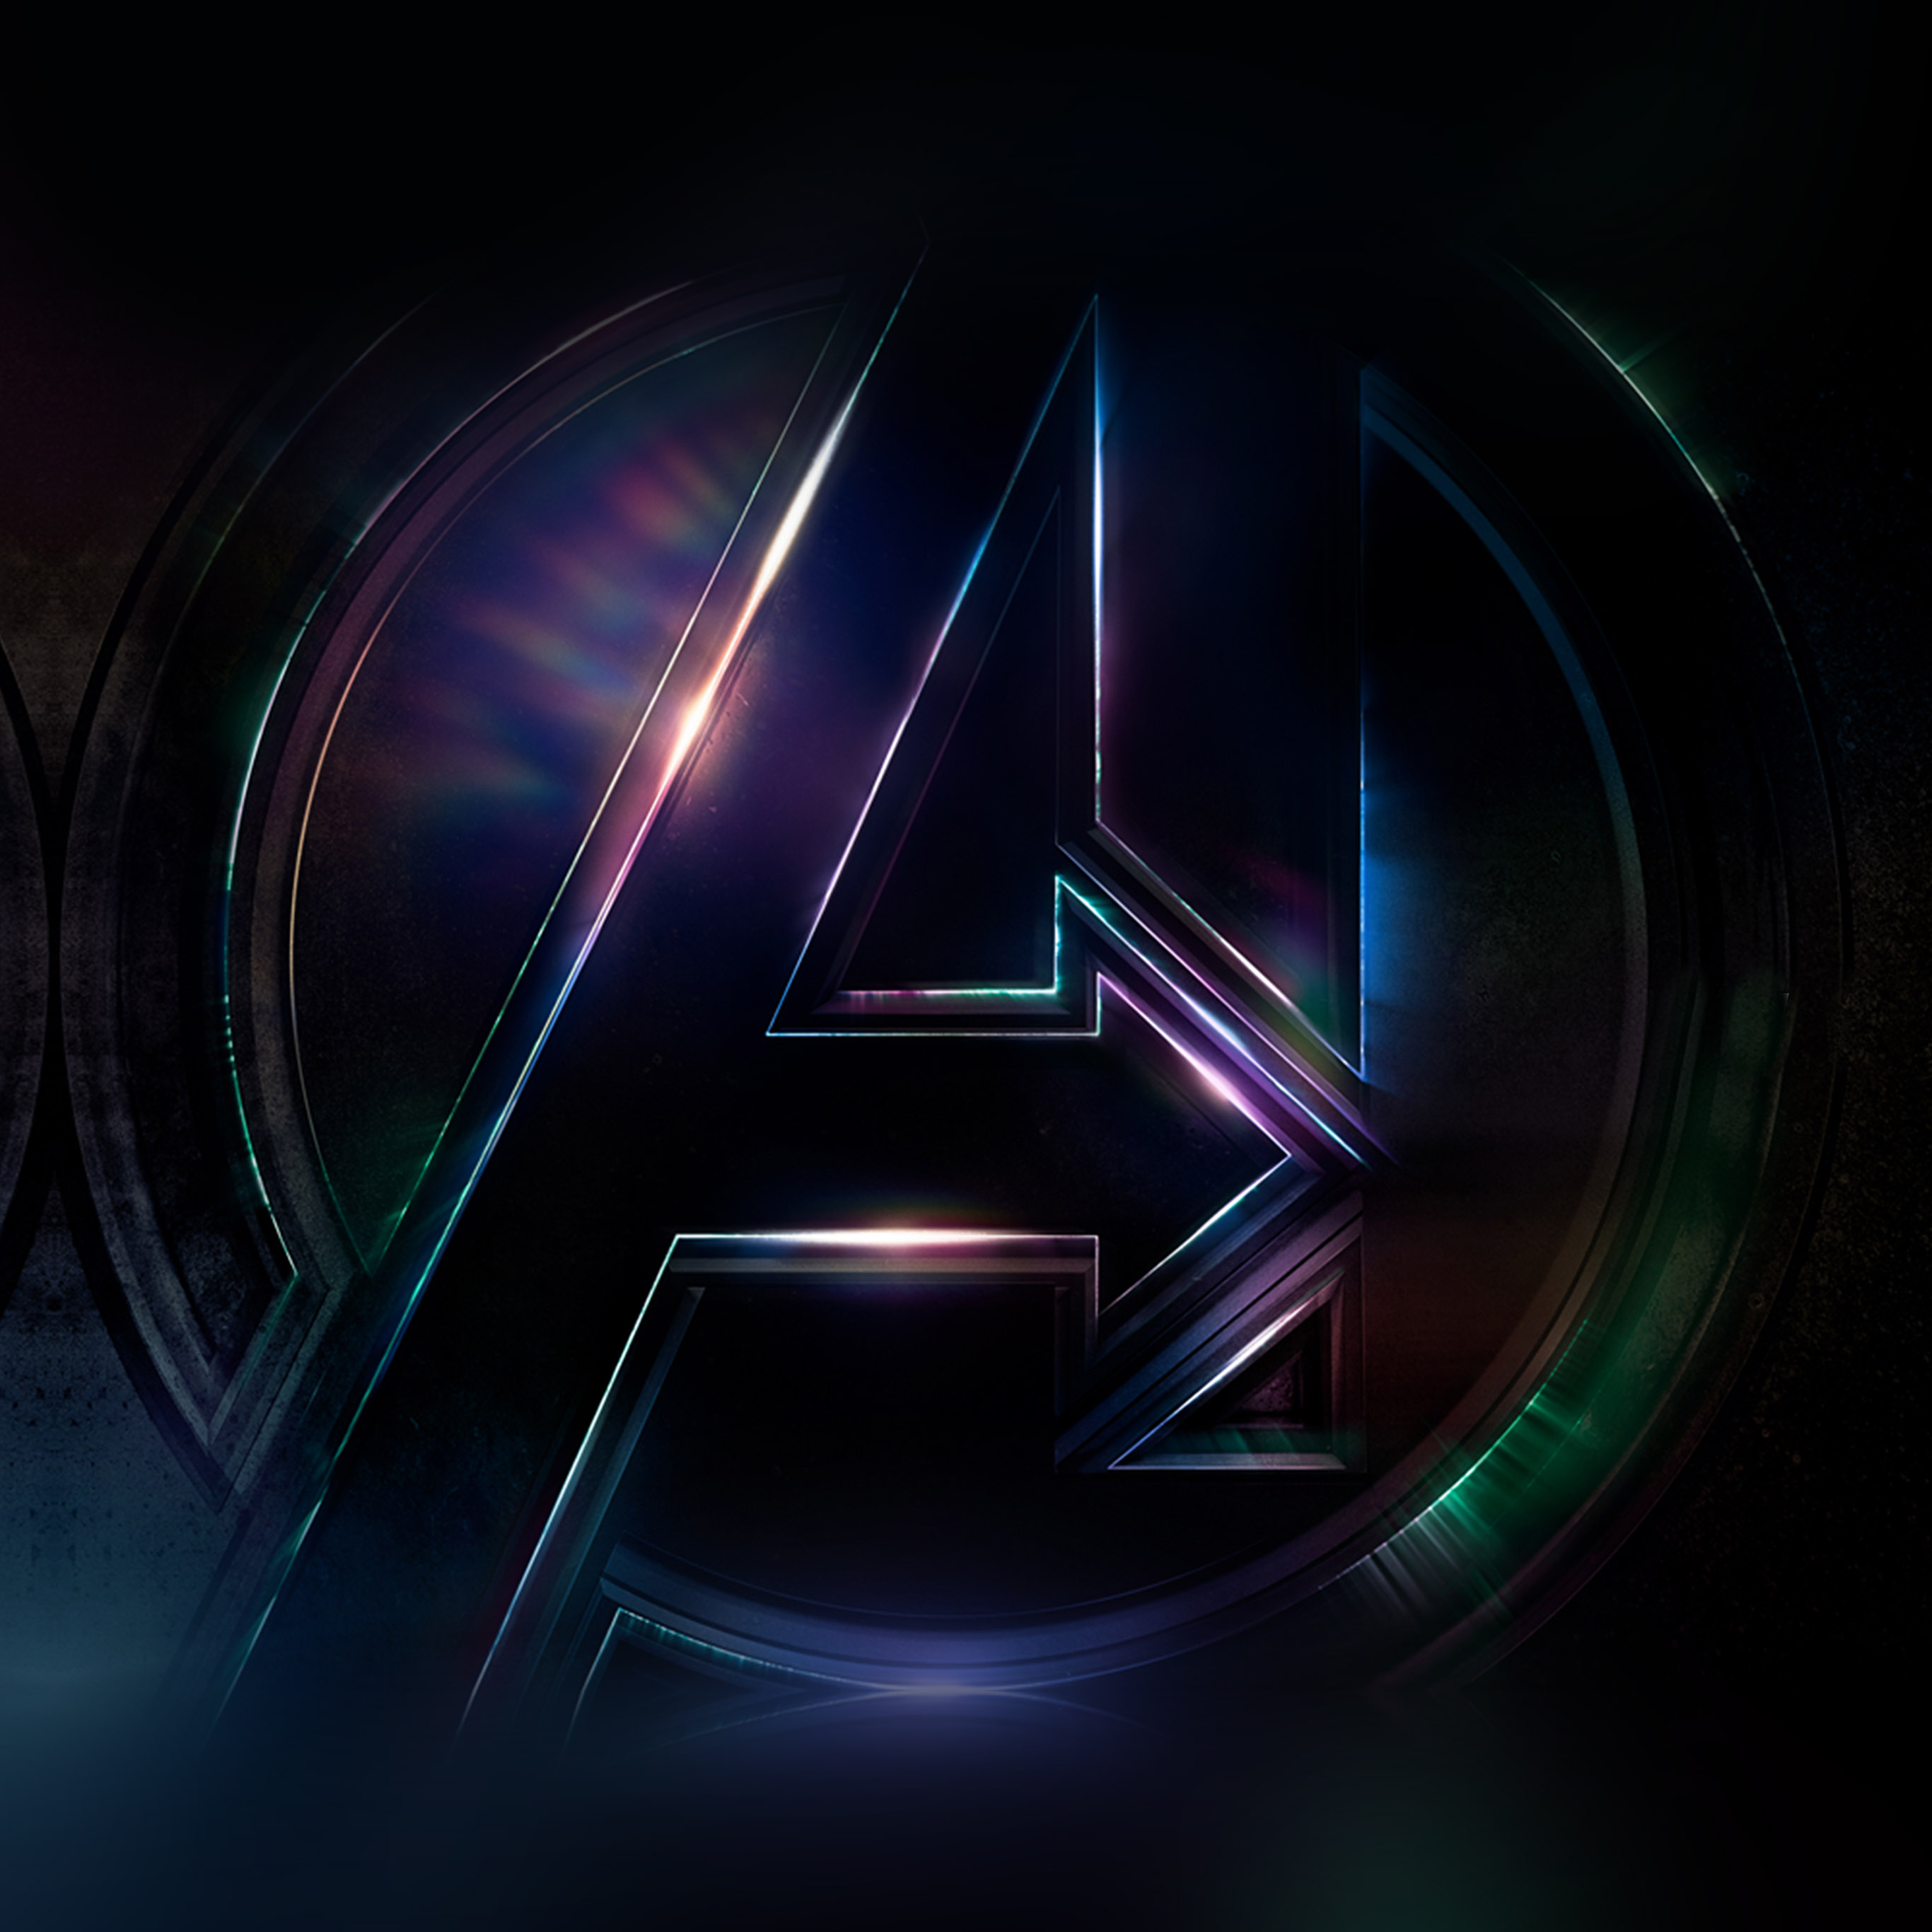 Download Fall Wallpaper For Laptops Papers Co Android Wallpaper Be49 Avengers Logo Dark